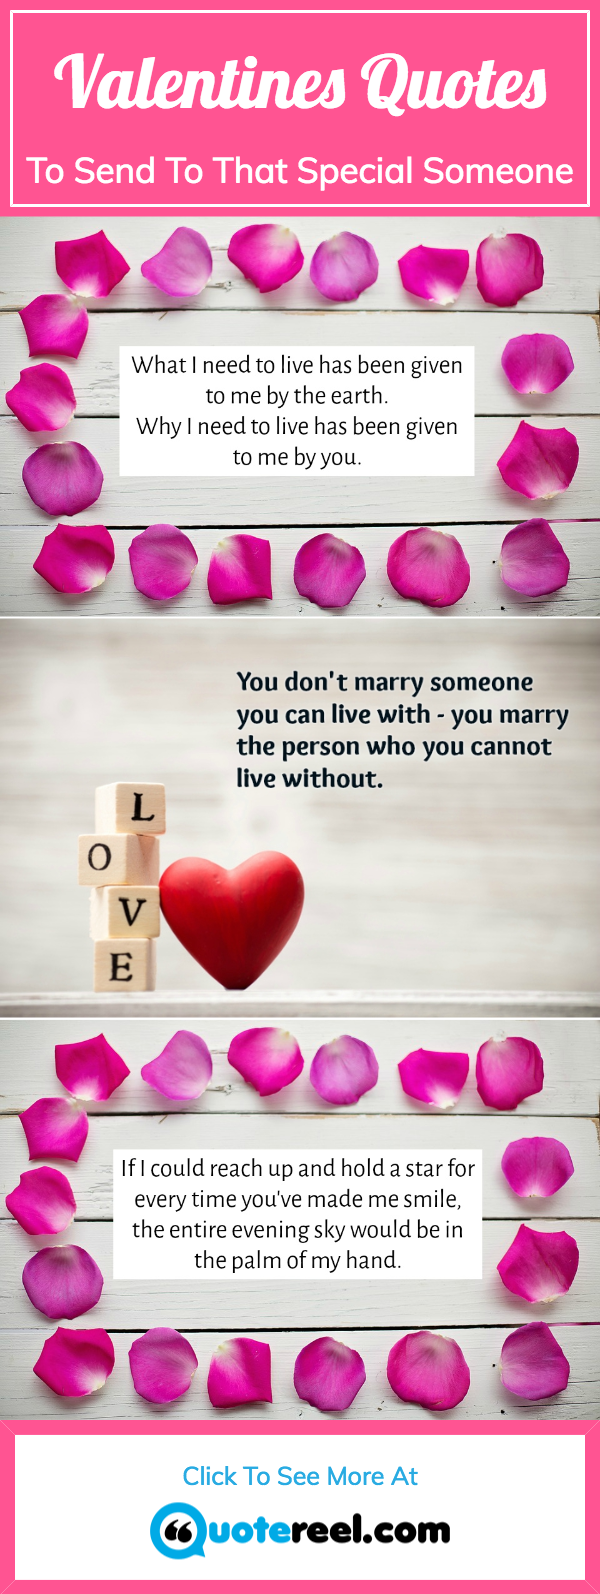 Romantic Valentines Day Quotes For Wife Quotereel